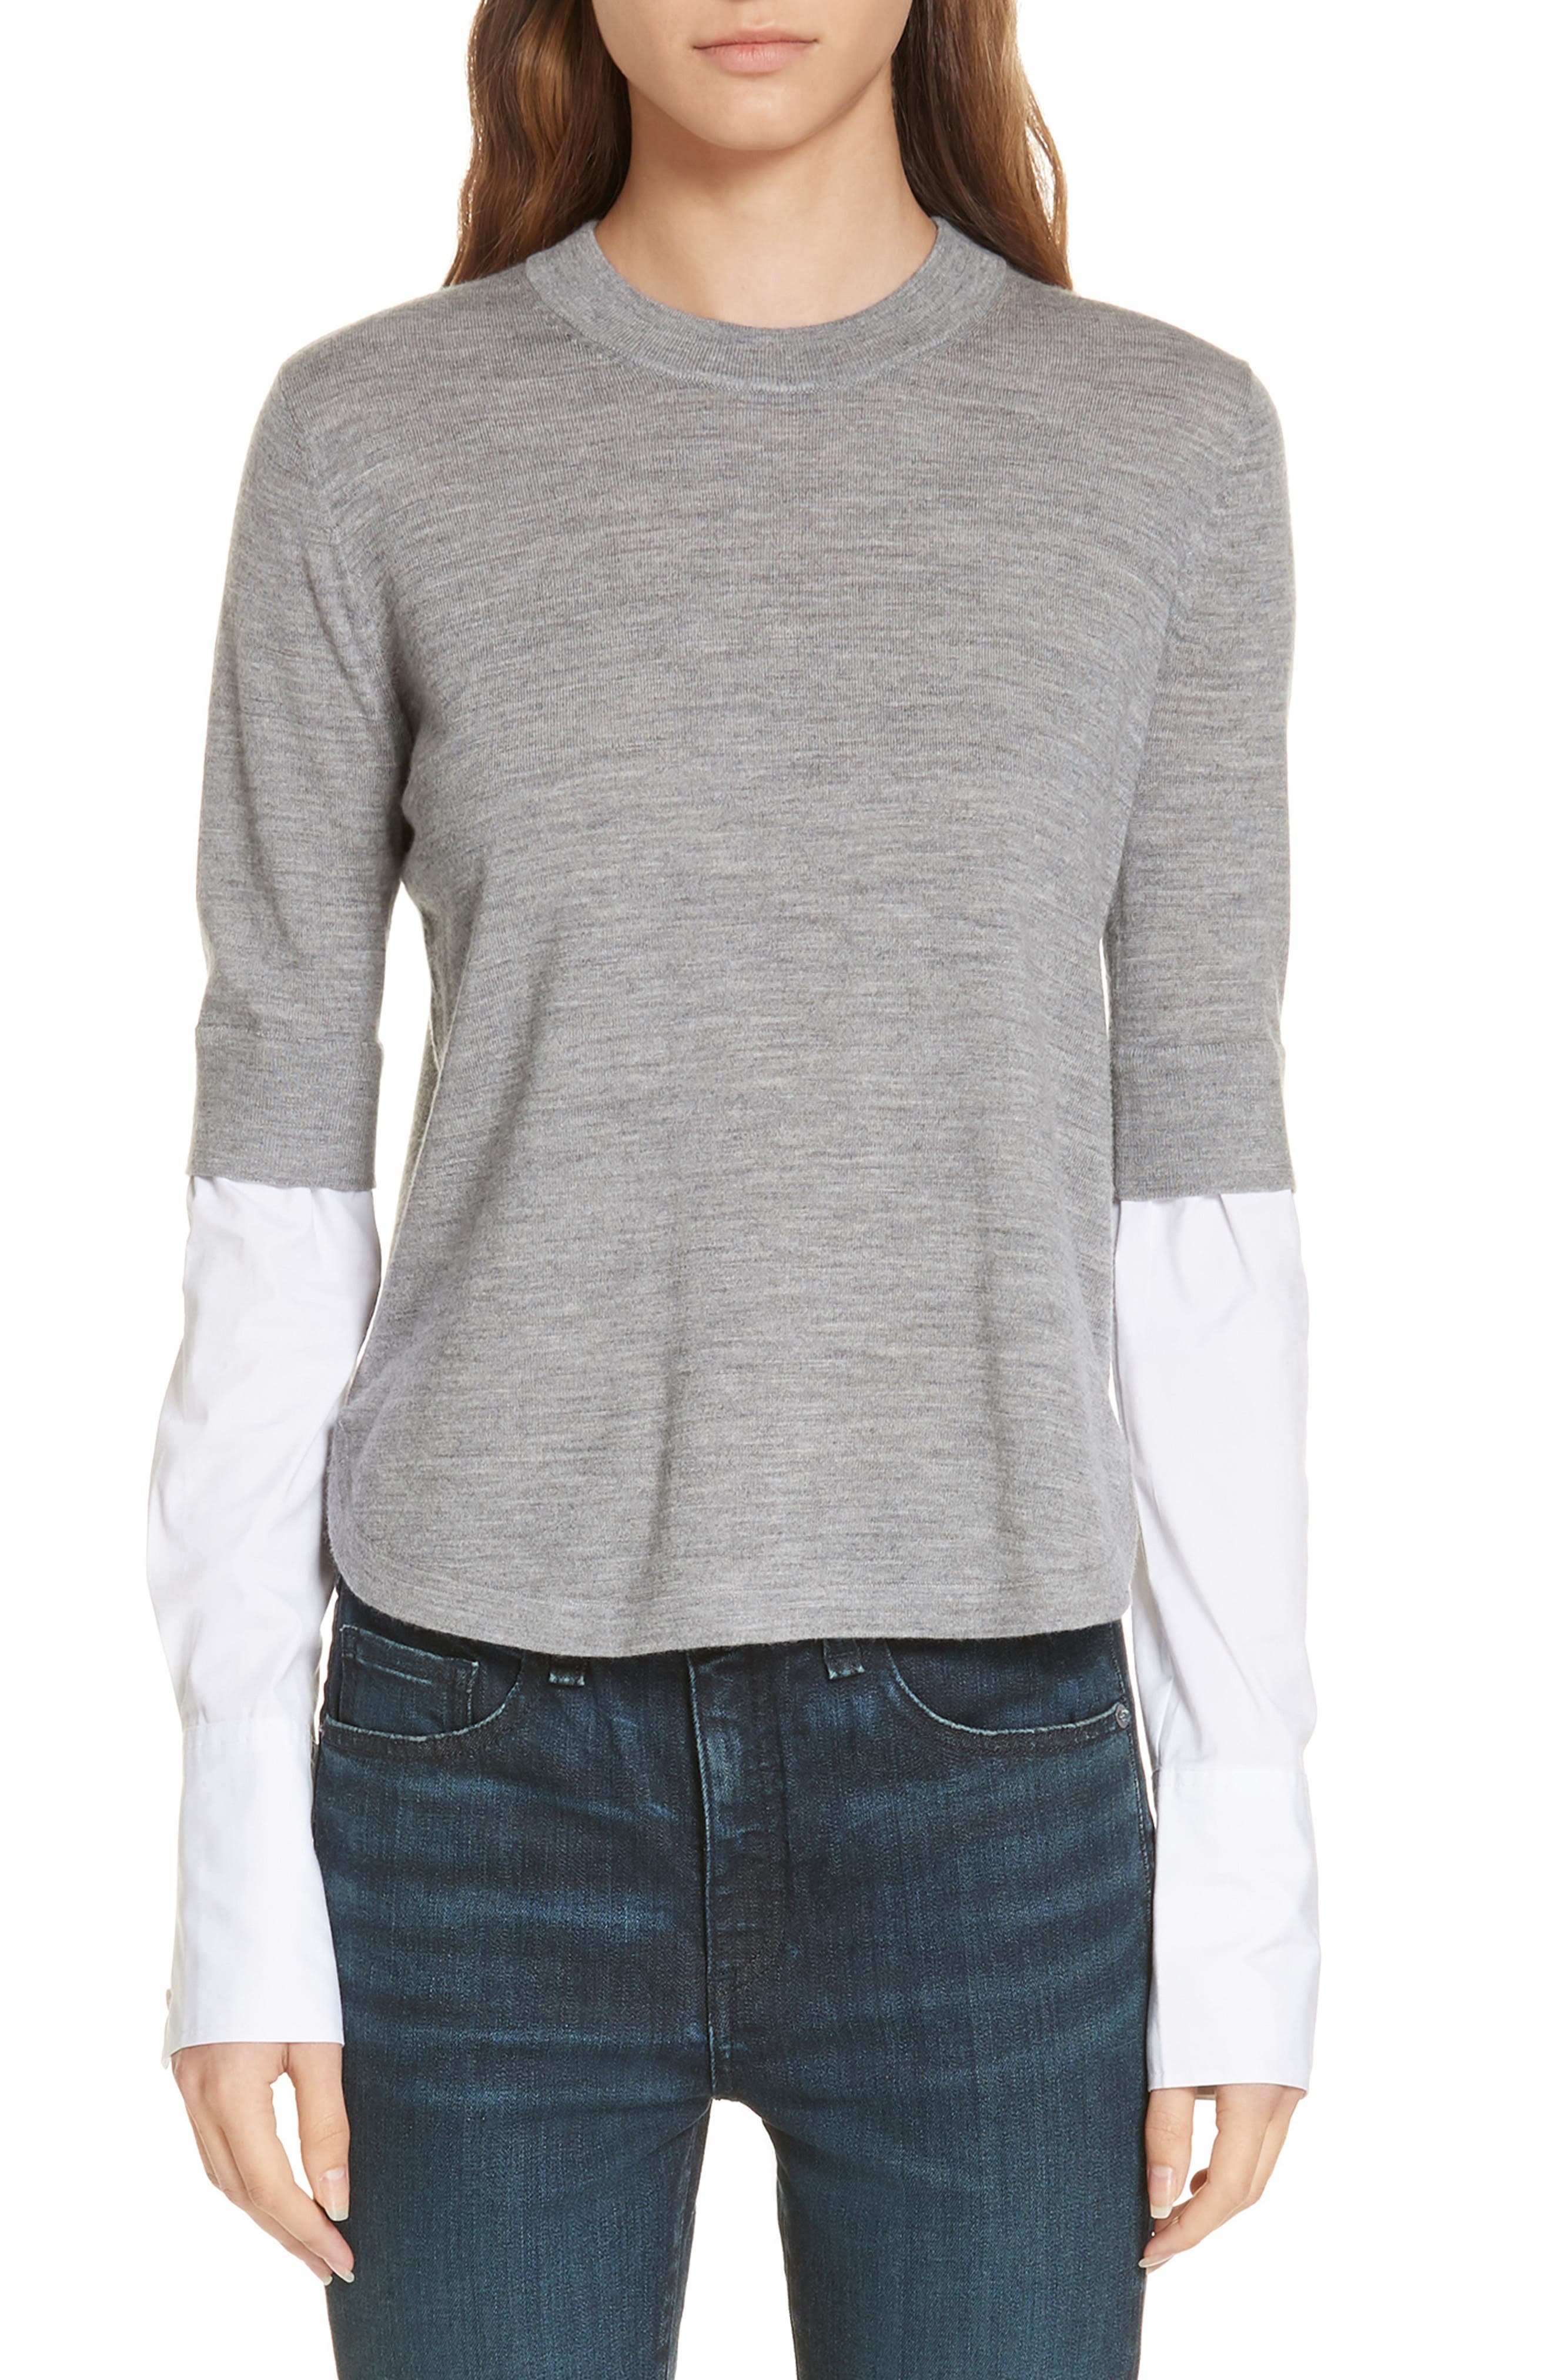 Roscoe Layered Sweater,                         Main,                         color, GREY MELANGE